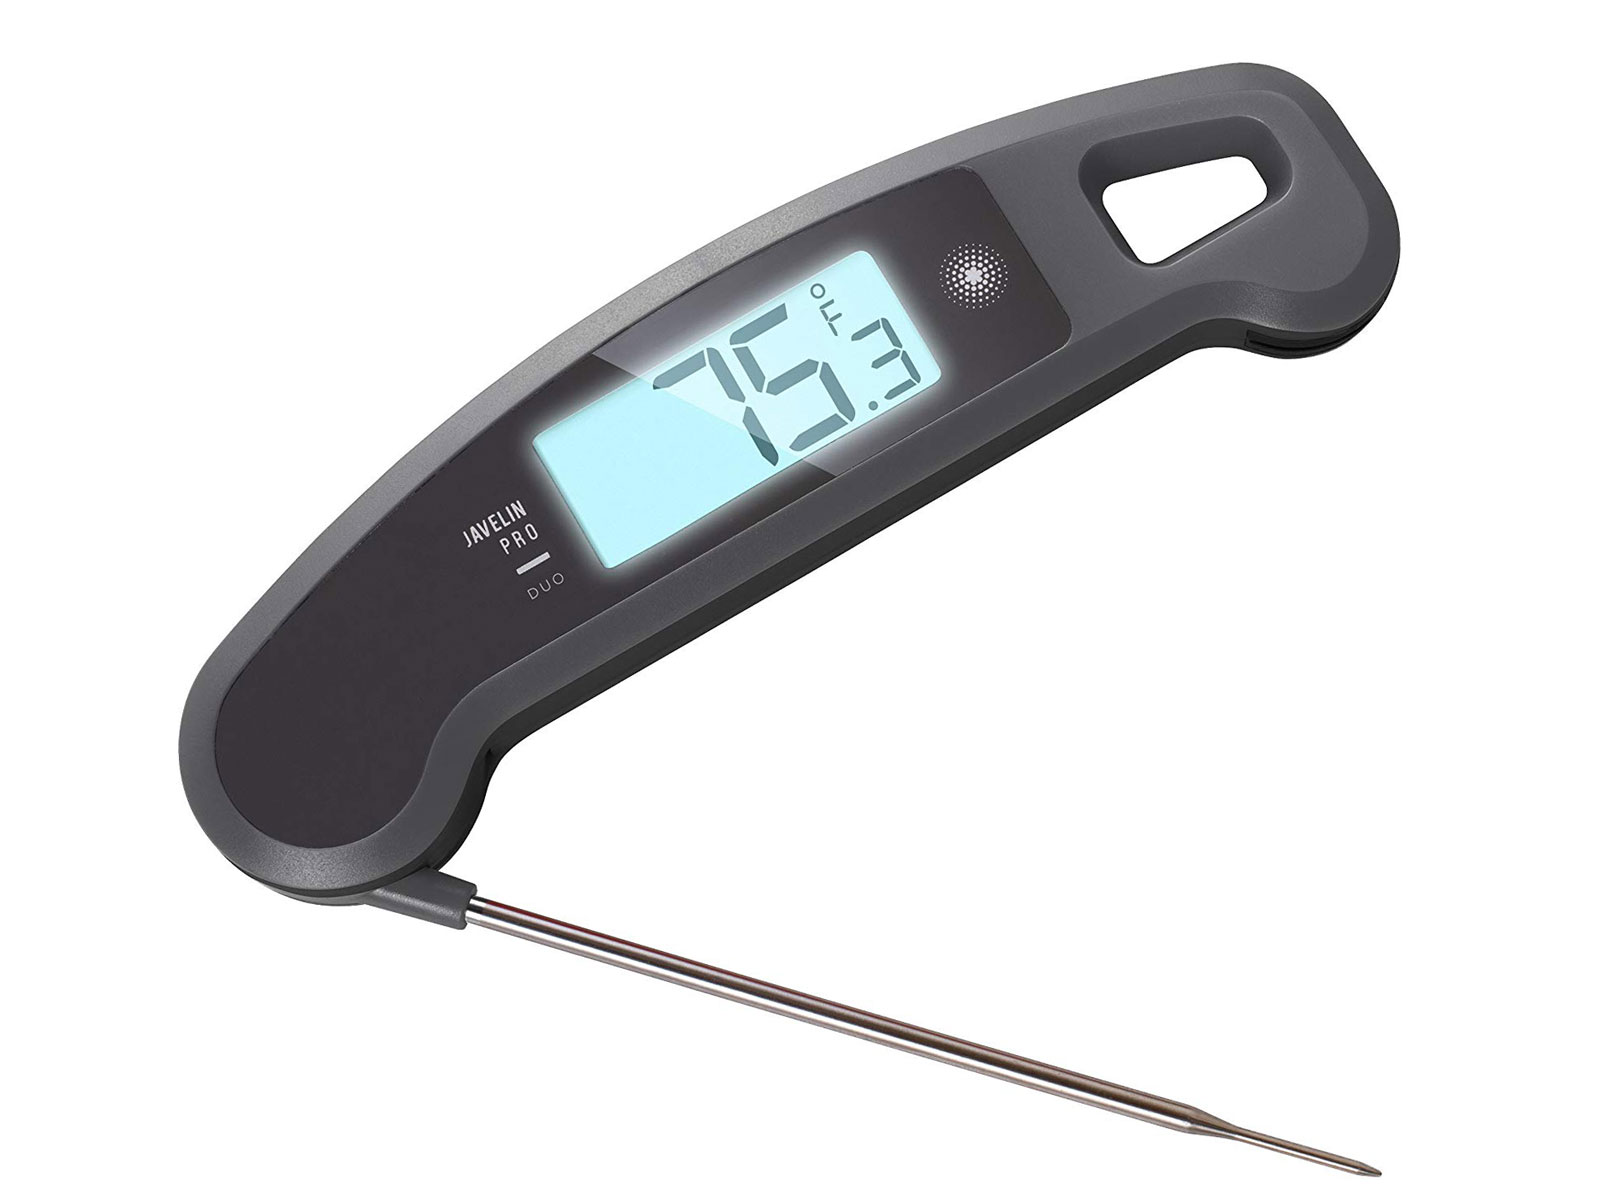 javelin pro meat thermometer